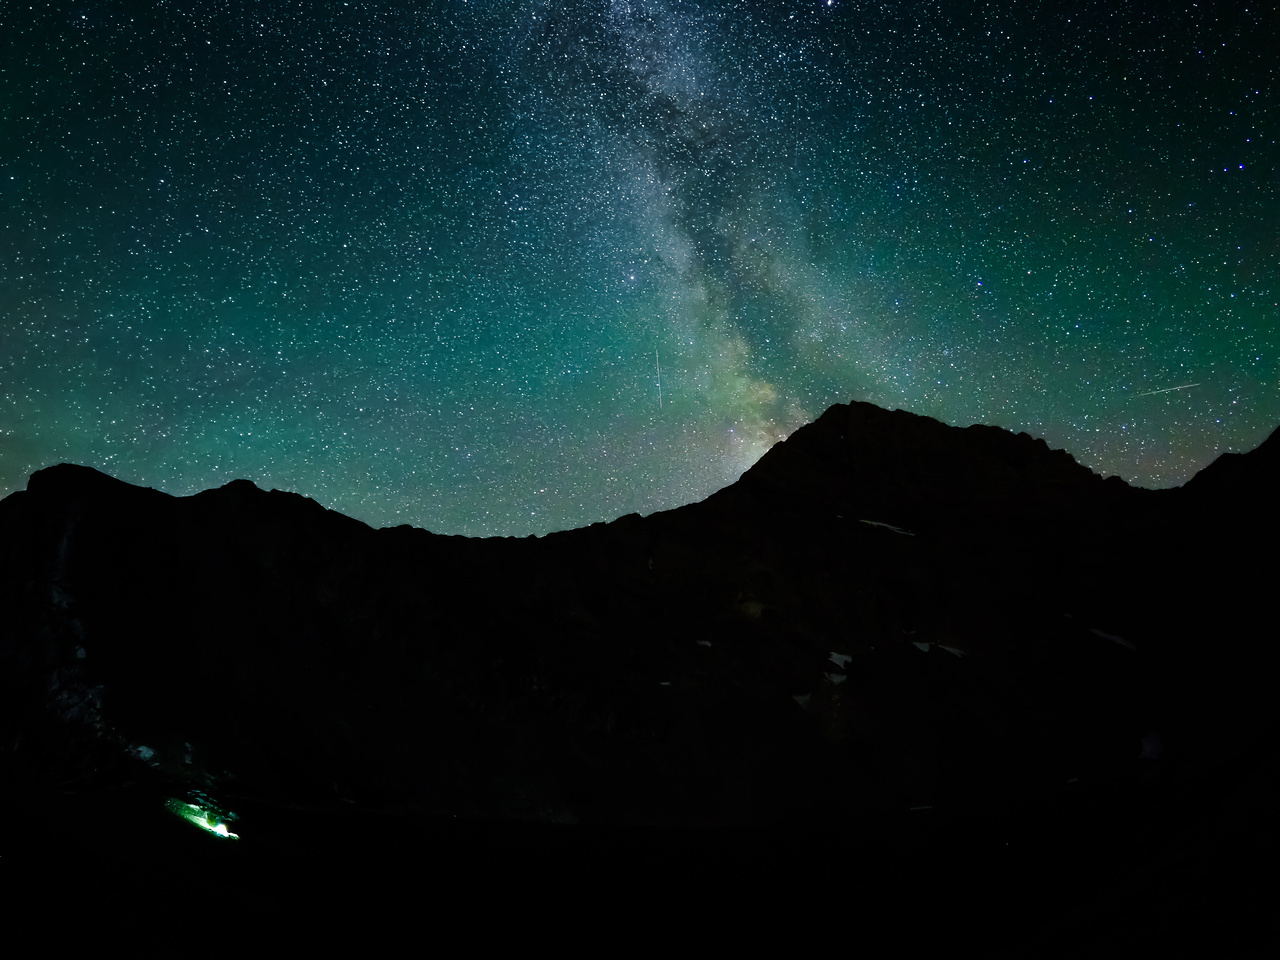 The Milky Way rises over Mount McPhail. Our mid is lit up at lower left.